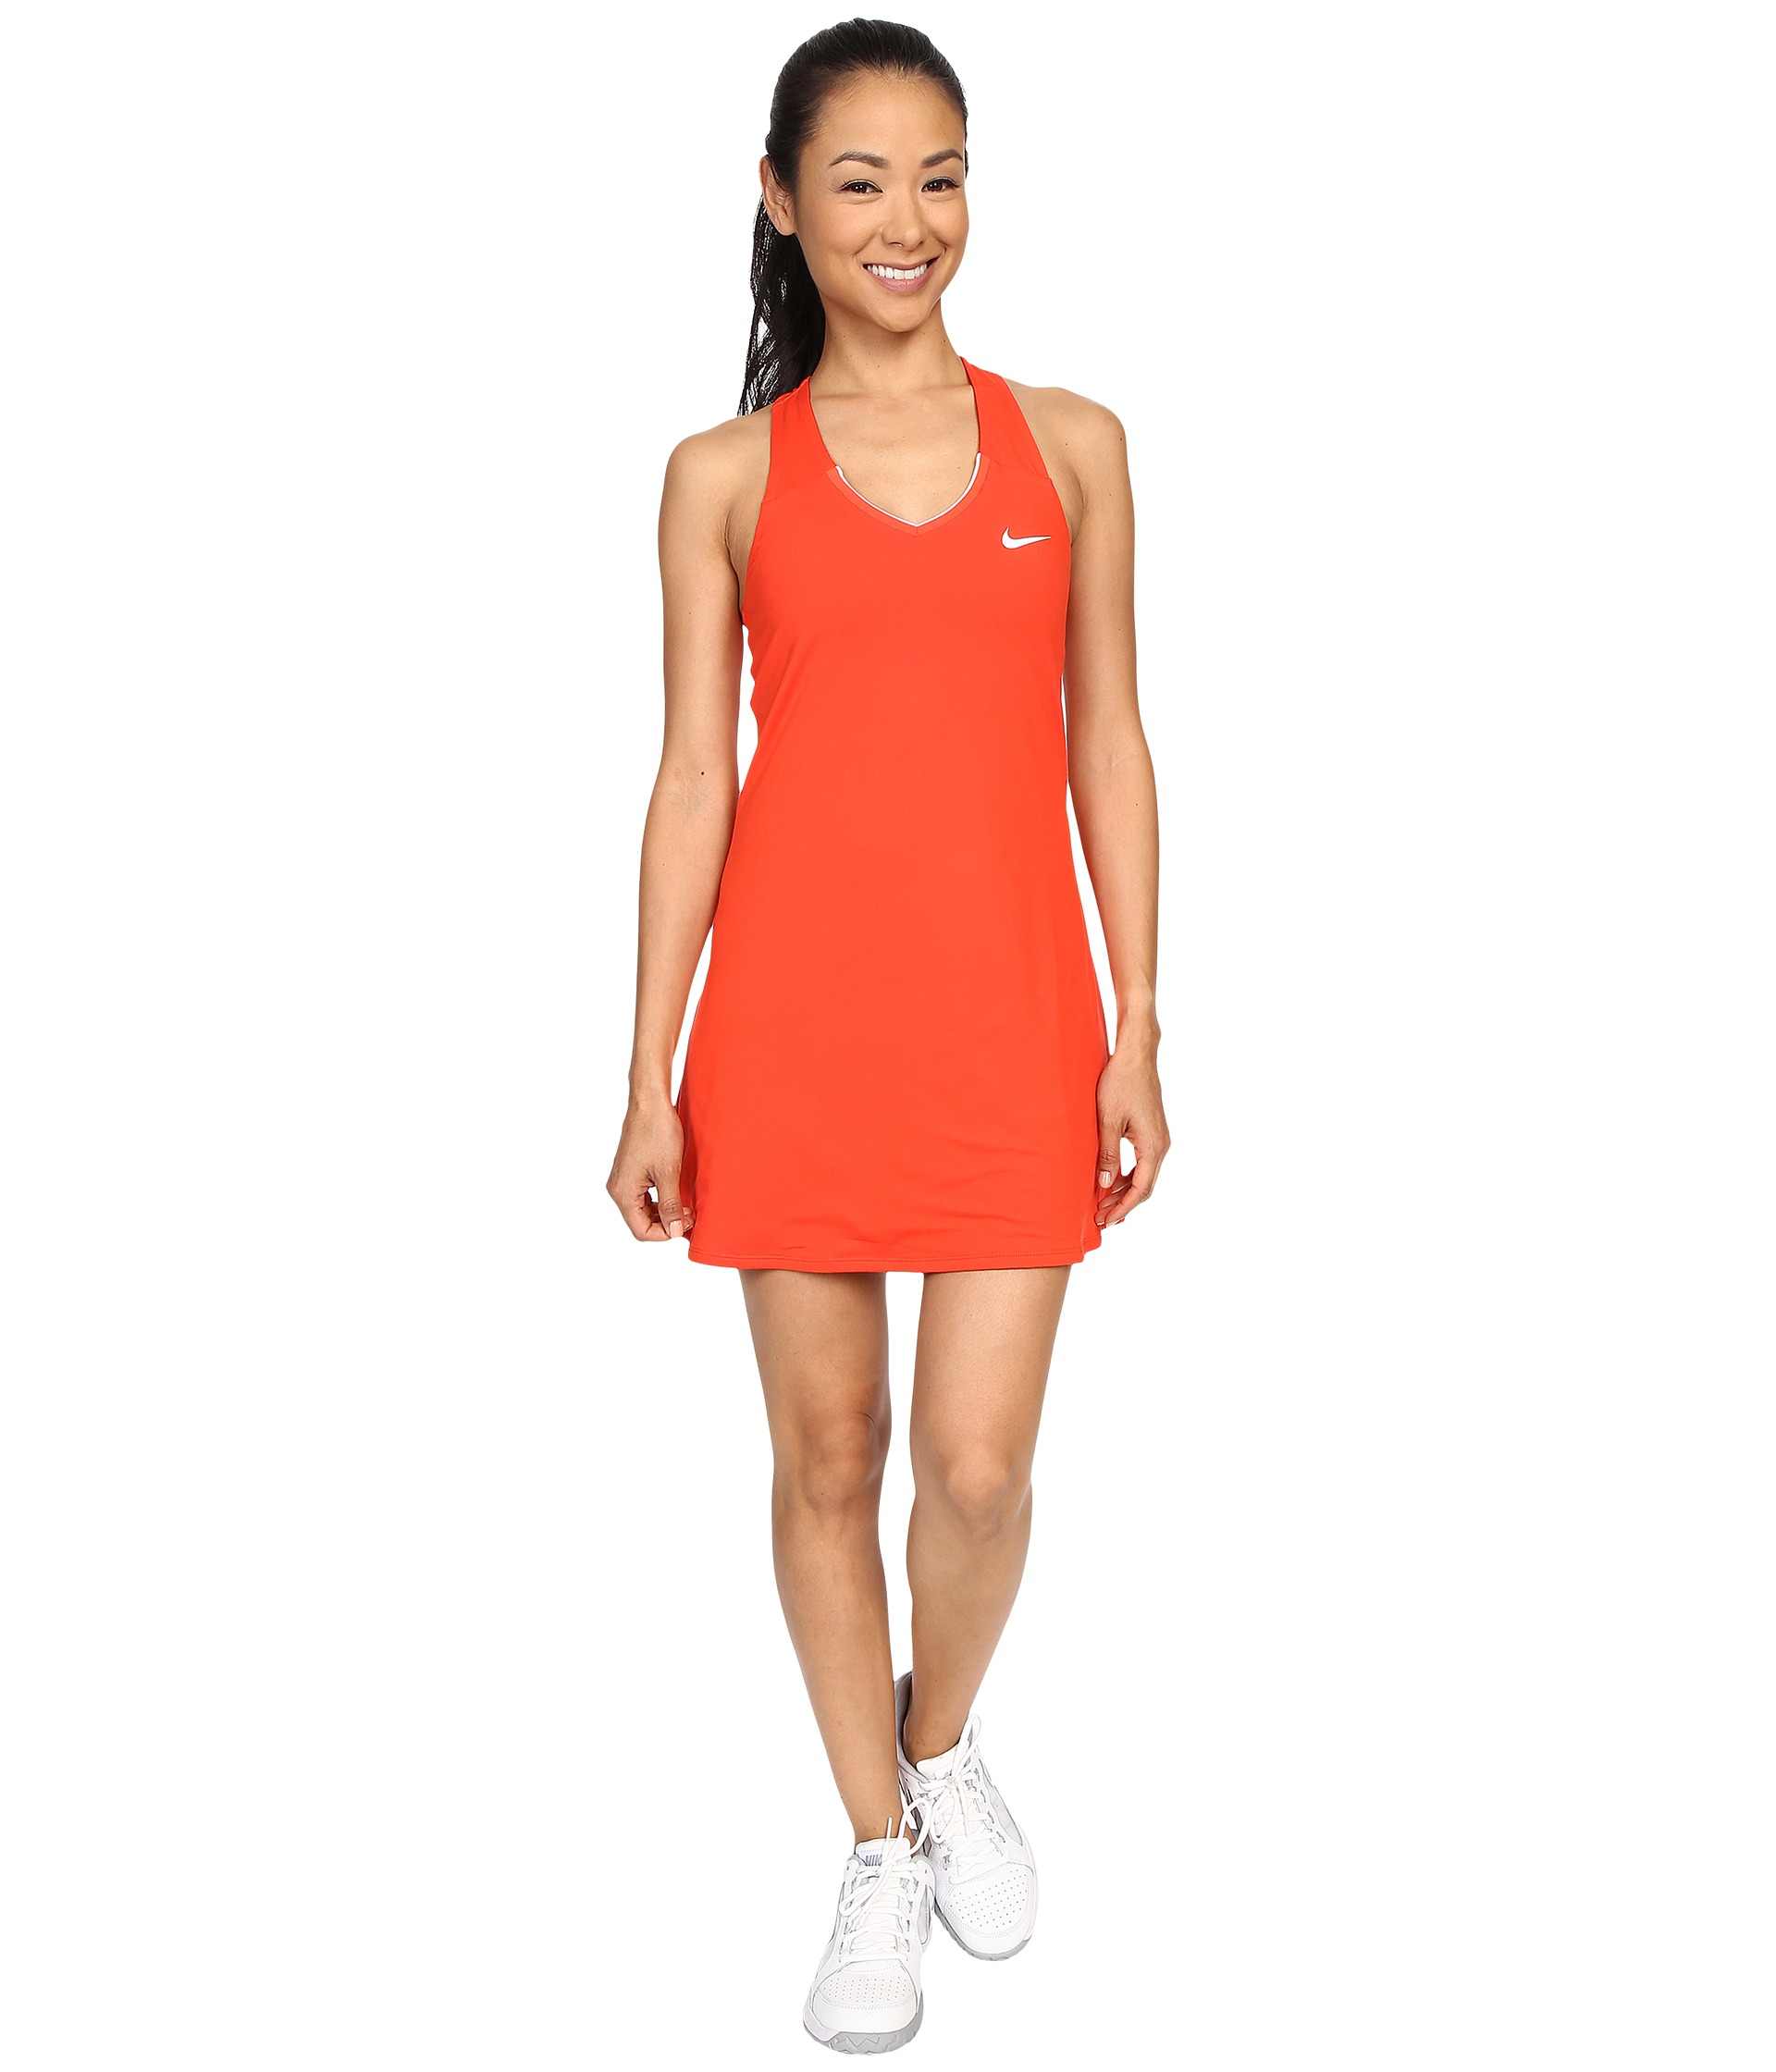 Find great deals on eBay for tennis dress. Shop with confidence.